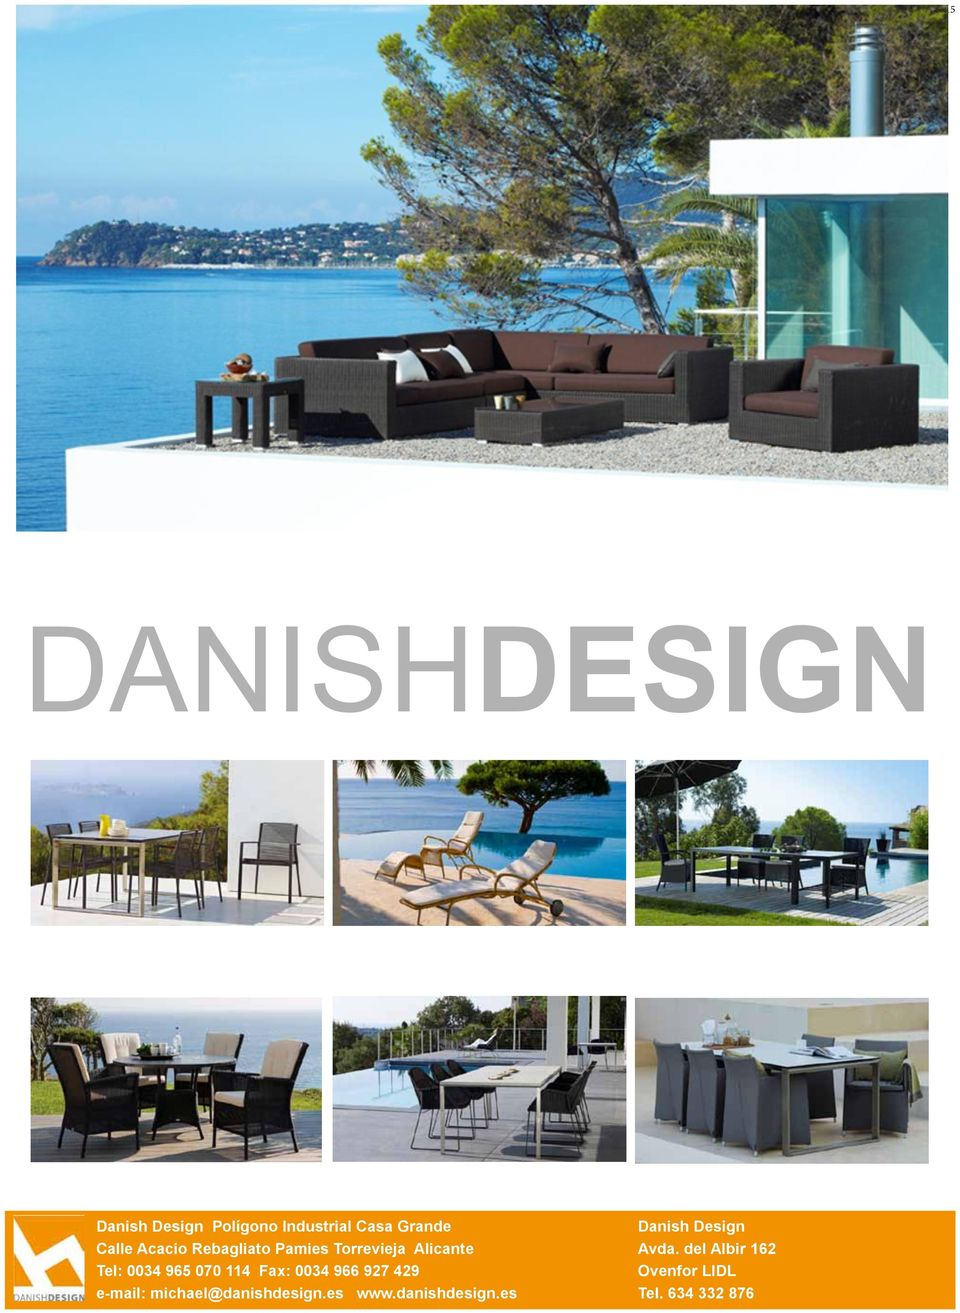 114 Fax: 0034 966 927 429 e-mail: michael@danishdesign.es www.